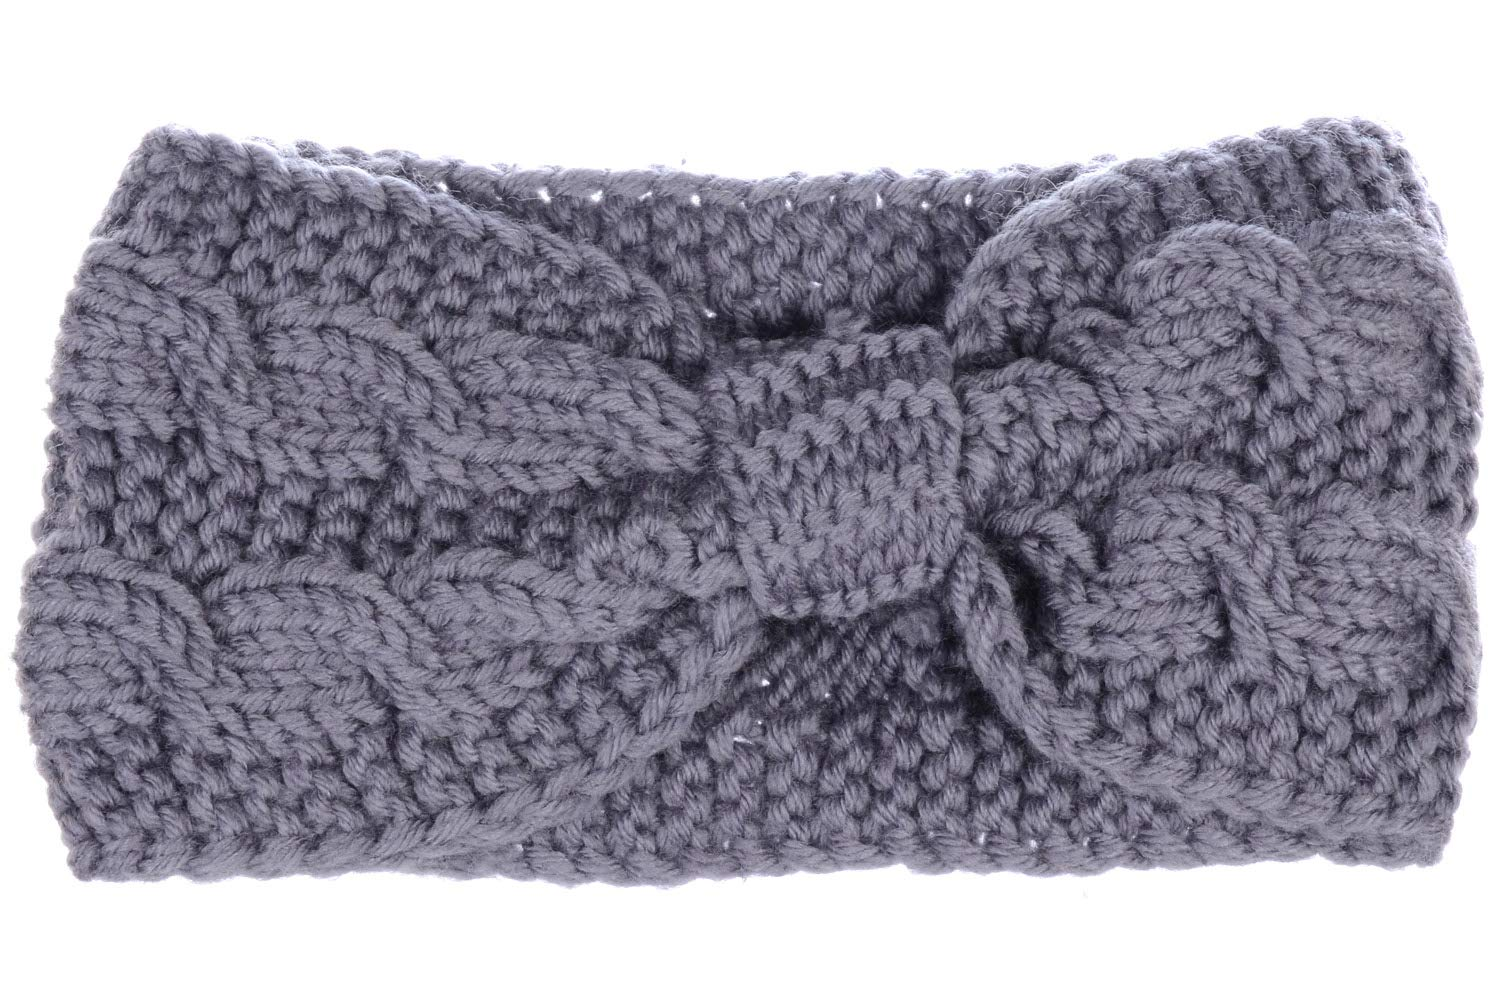 Womens Winter Boho Chic Classic Cable Bow Knotted Crochet Knitted Turban Headband Headwrap by Be Your Own Style (Image #2)